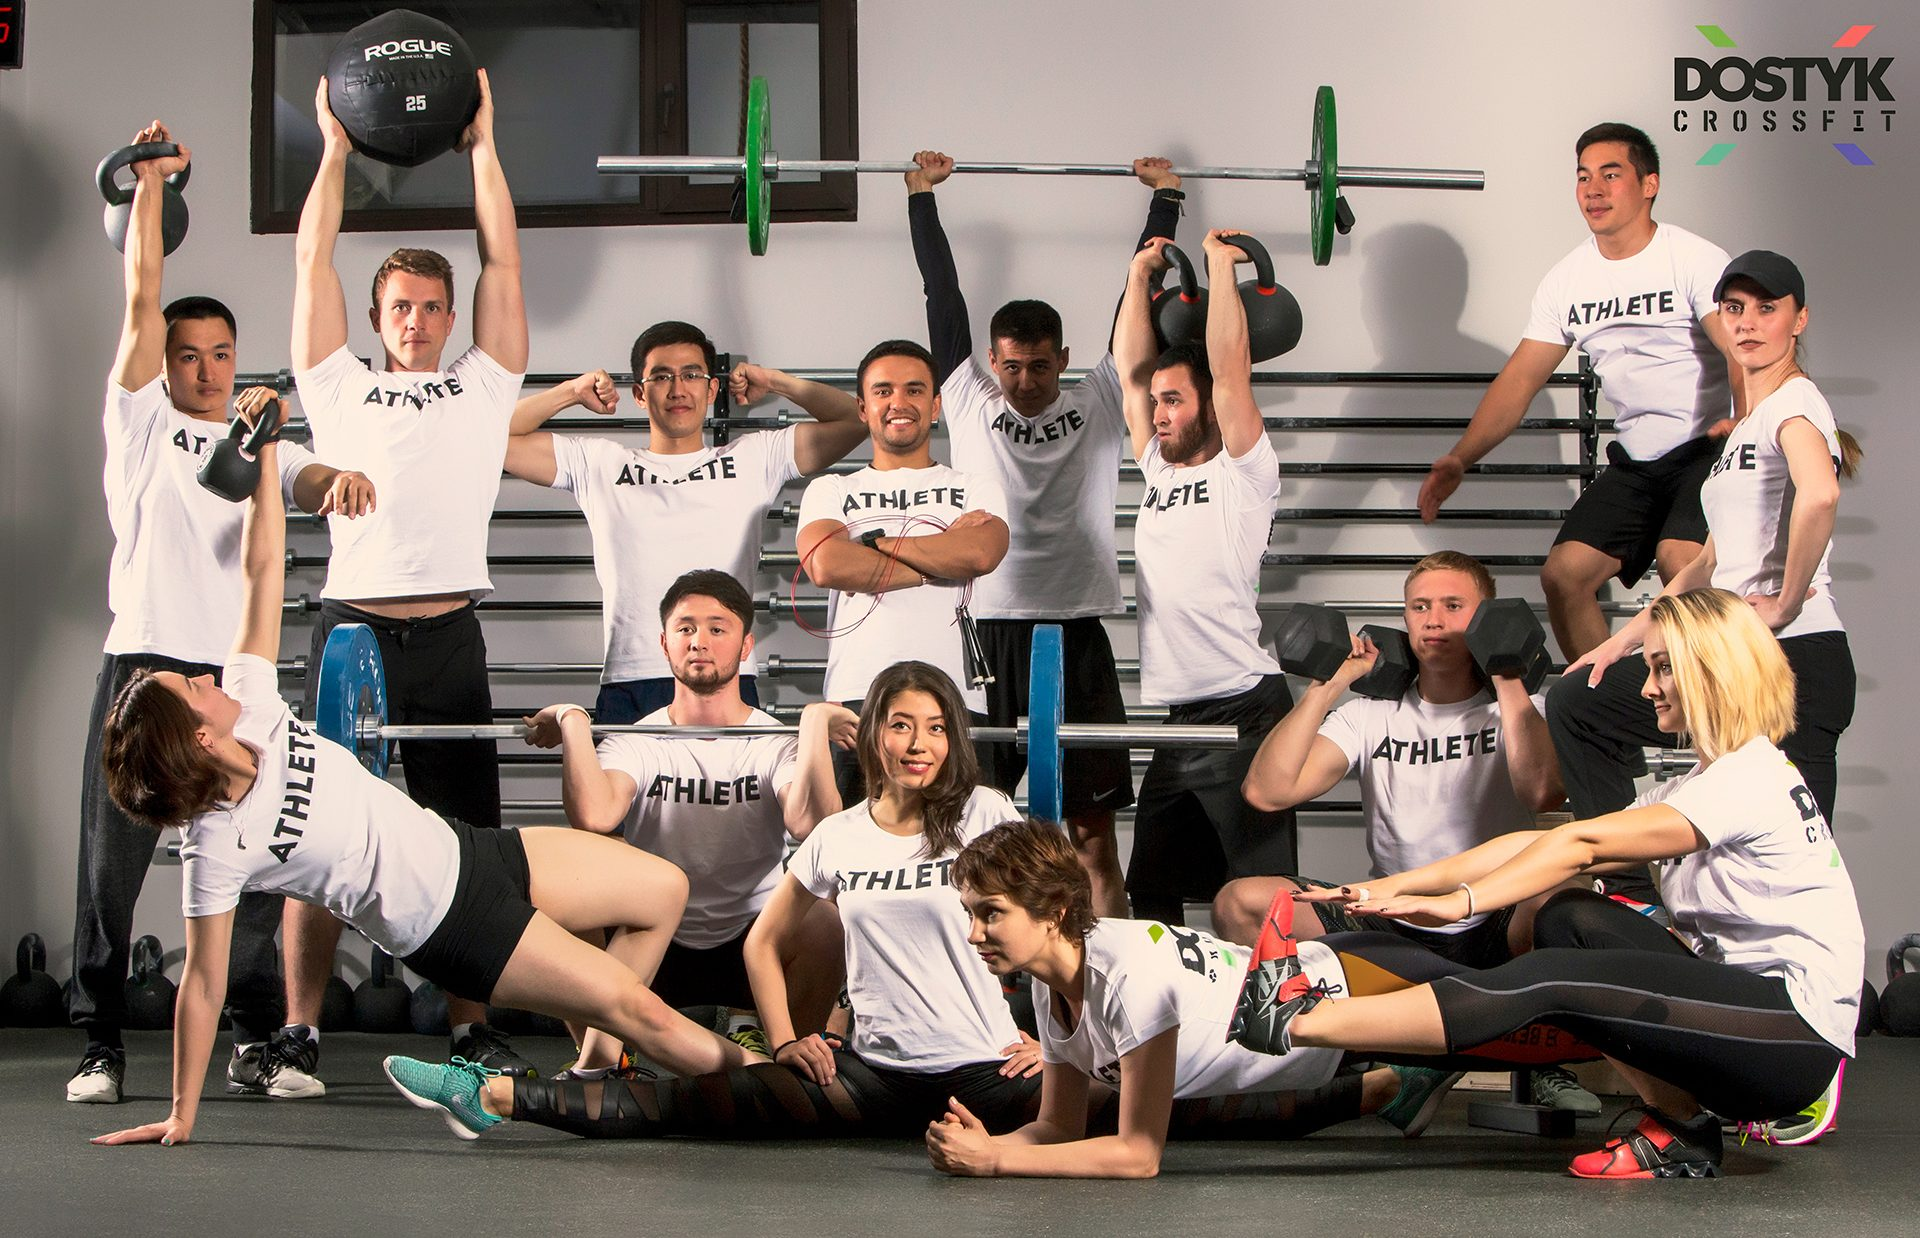 CrossFit box, coaching staff, Dostyk